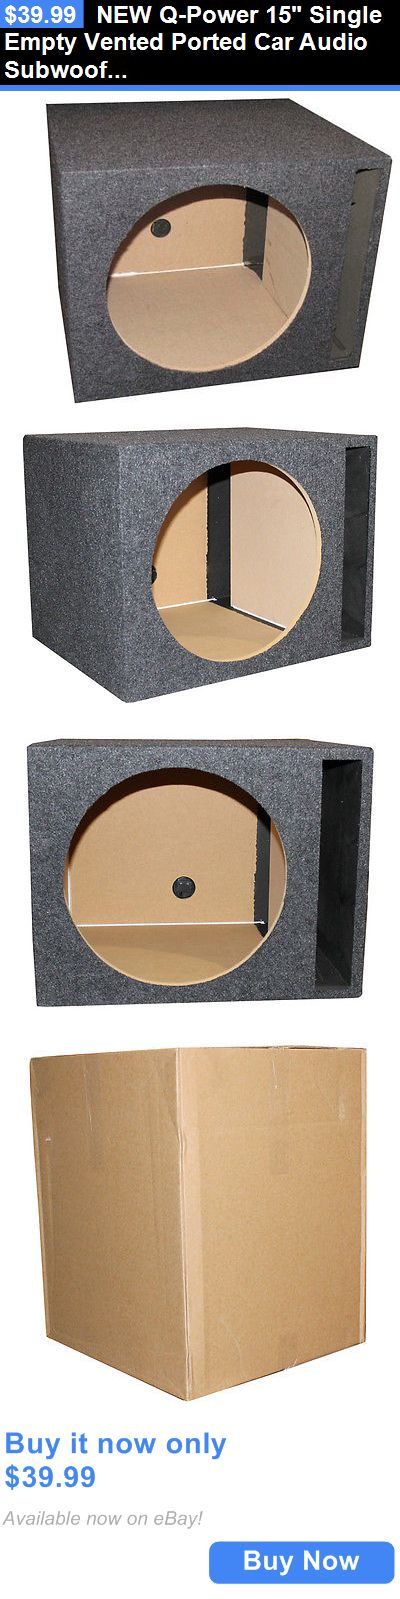 Speaker Sub Enclosures: New Q-Power 15 Single Empty Vented Ported Car Audio Subwoofer Sub Box Enclosure BUY IT NOW ONLY: $39.99